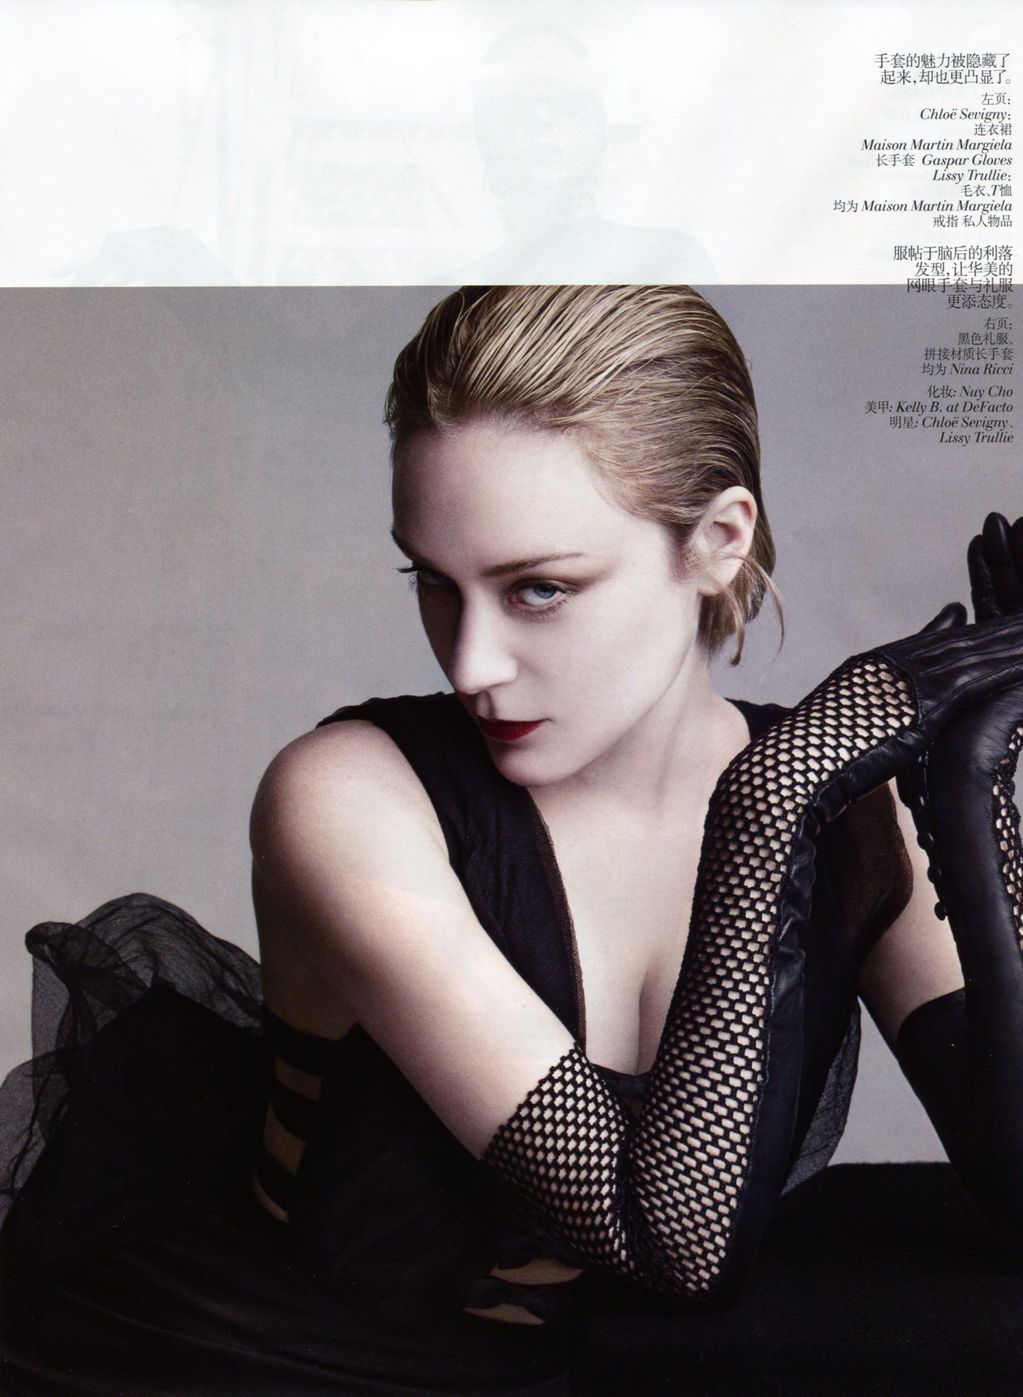 suicideblonde:  Chole Sevigny photographed by Danko Steiner for Vogue China, July 2012